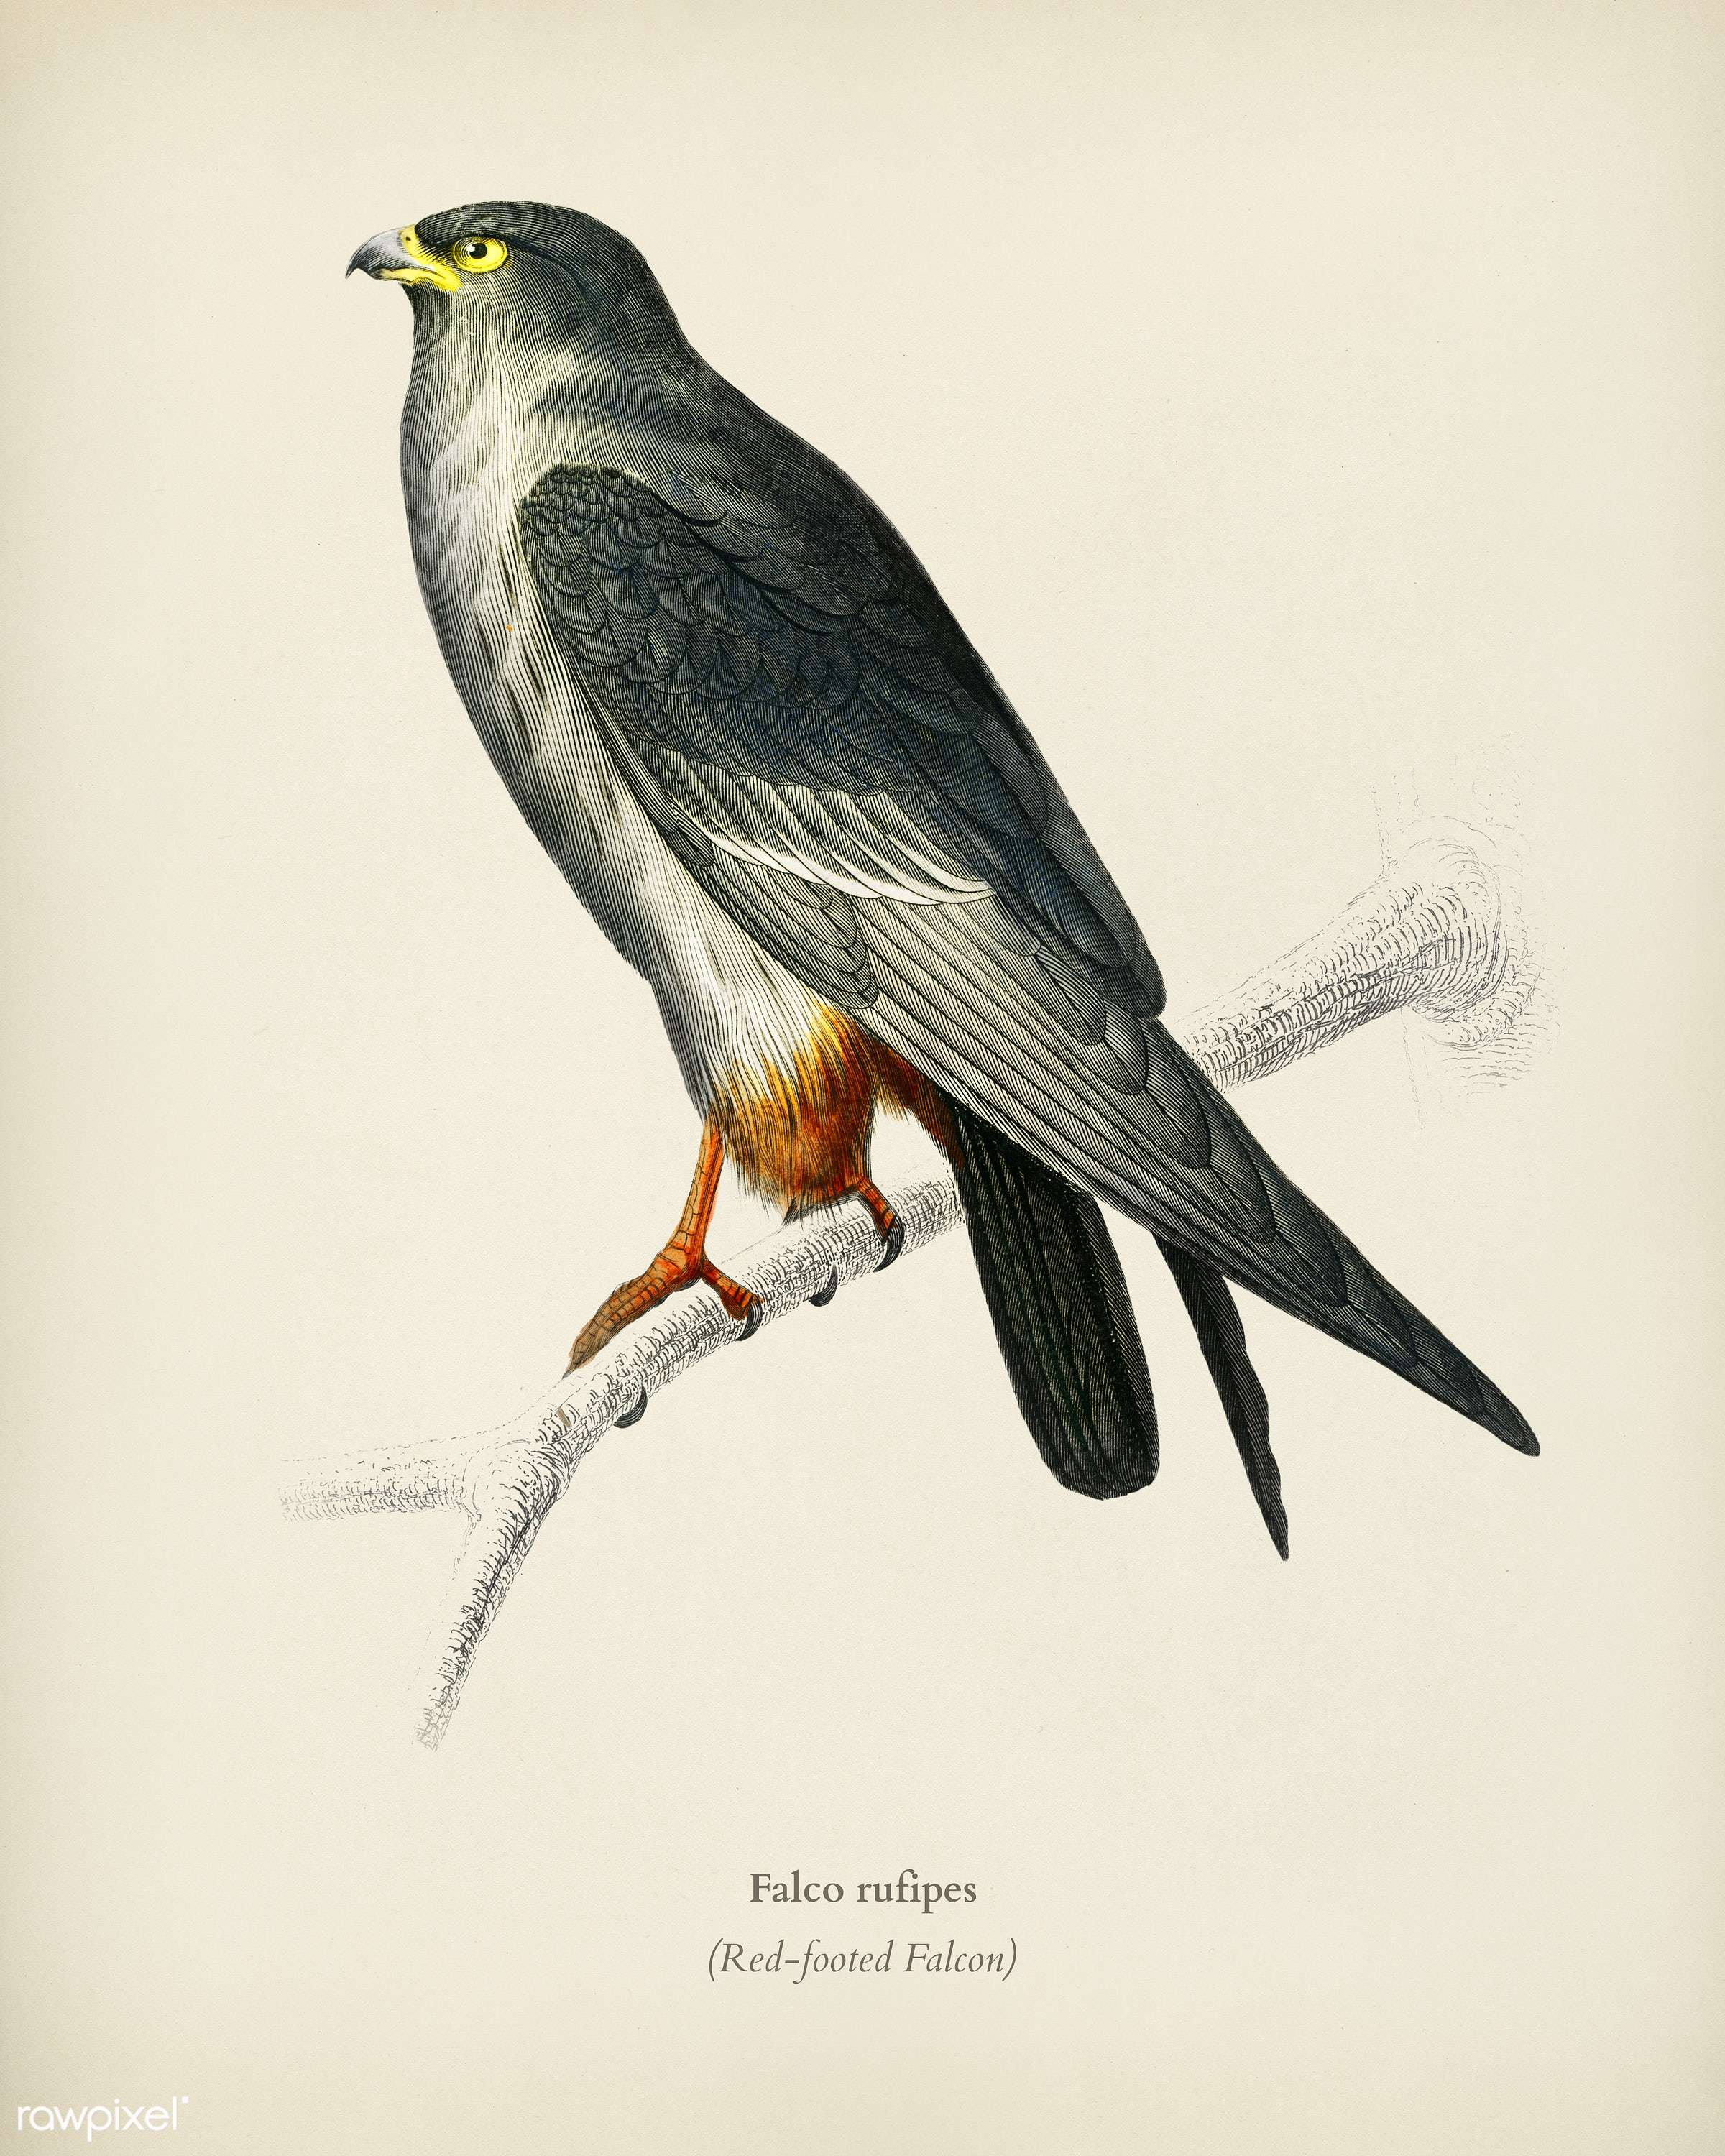 Red-footed Falcon (Falco rufipes) illustrated by Charles Dessalines D' Orbigny (1806-1876). Digitally enhanced from our...